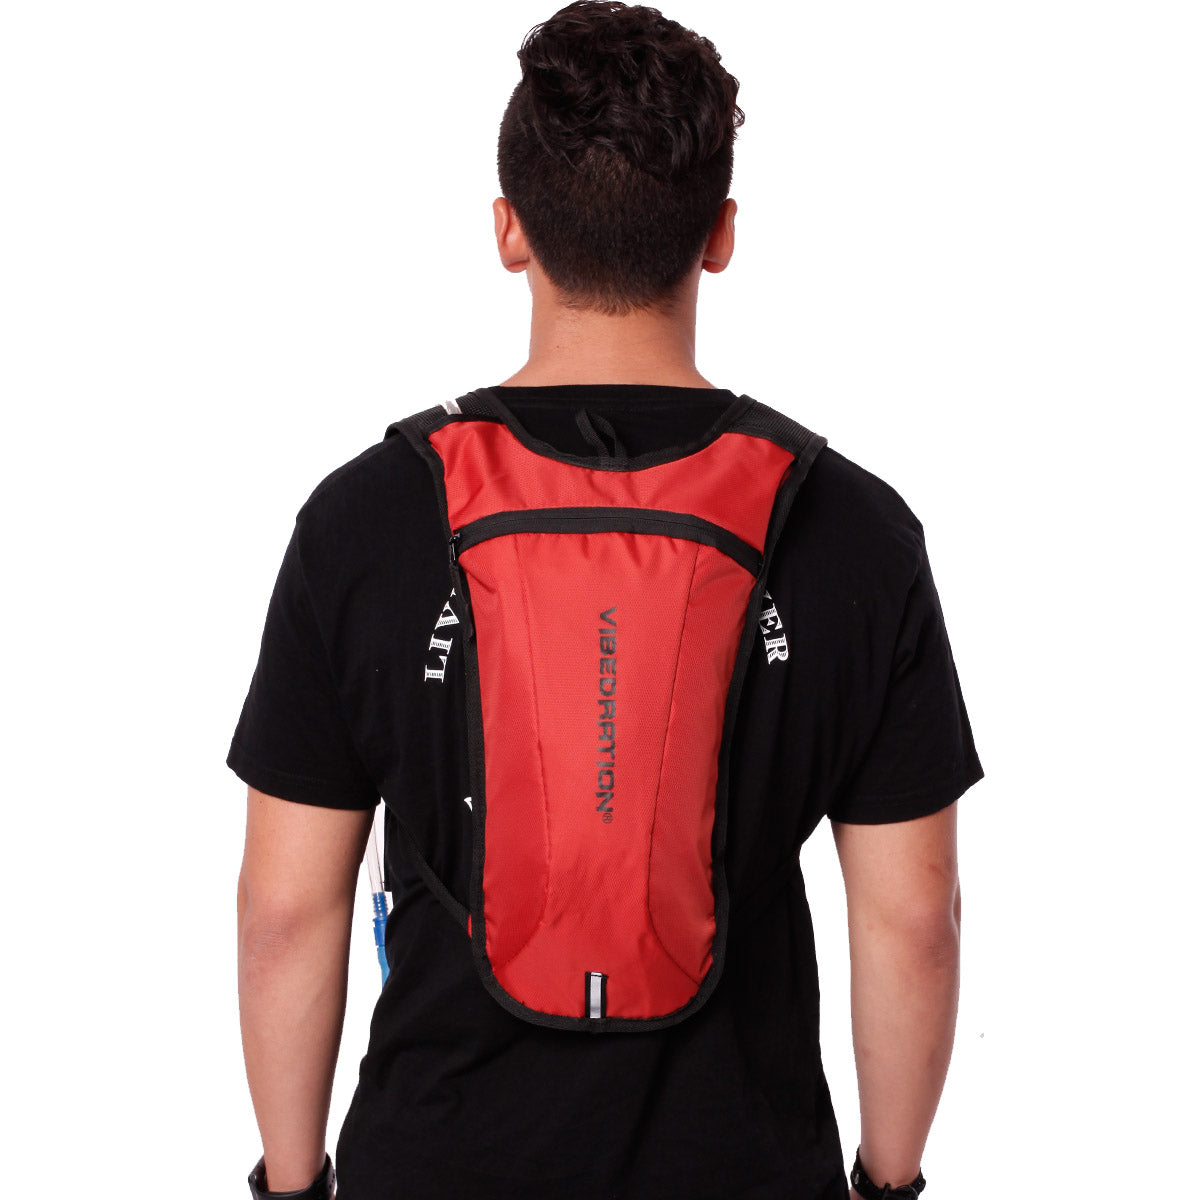 Back view of male wearing dark orange hydration backpack.